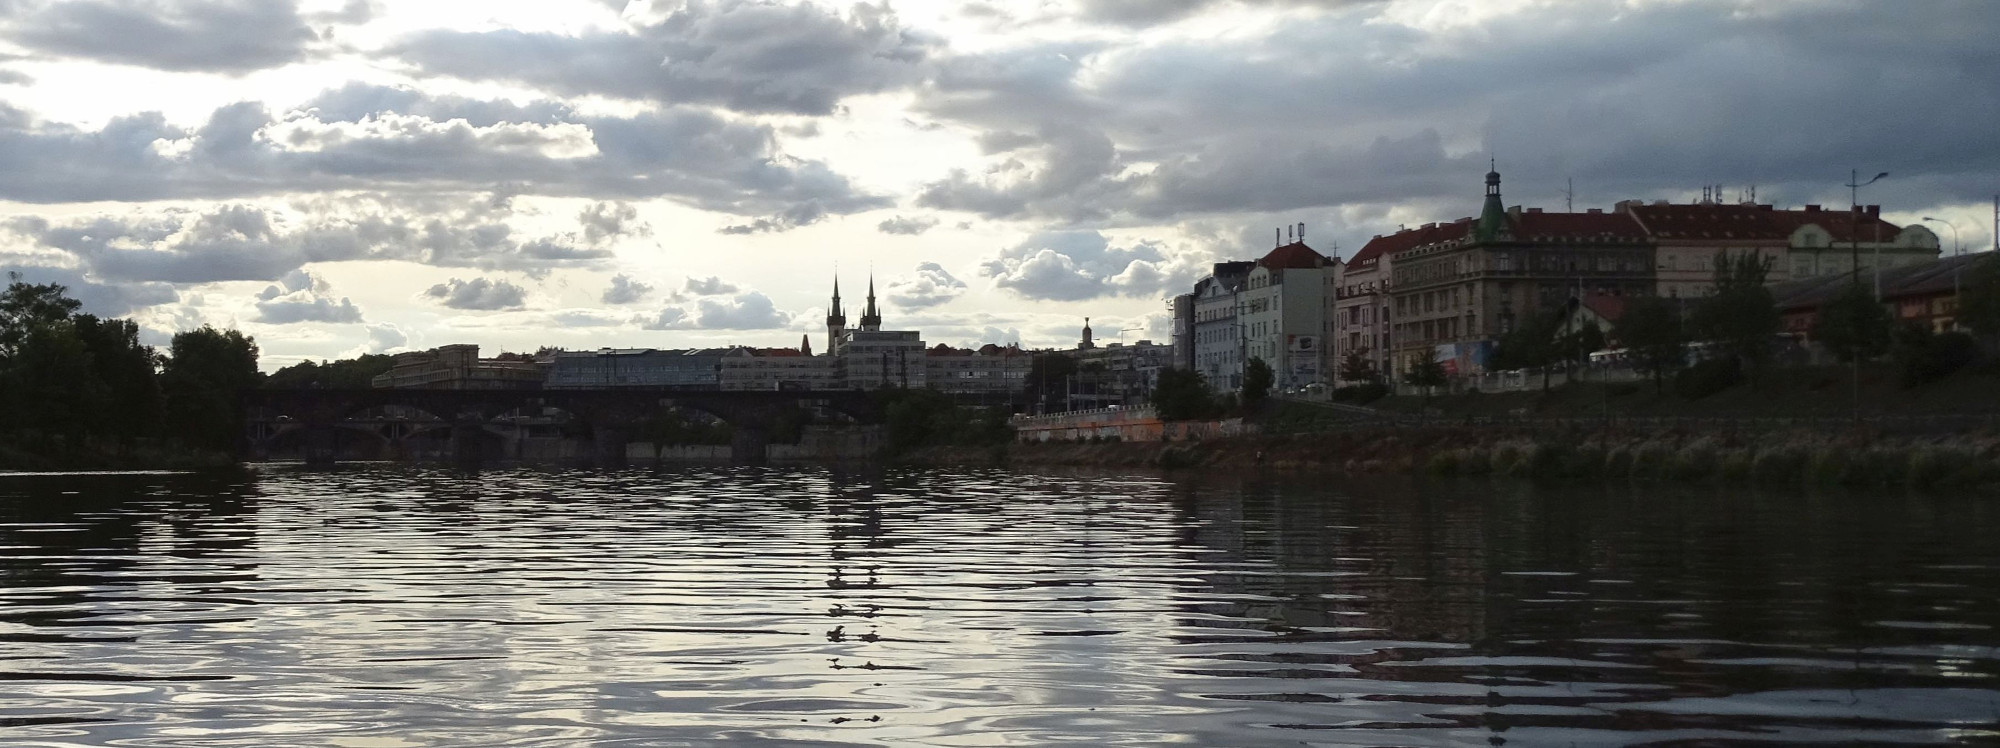 View from the Vltava River